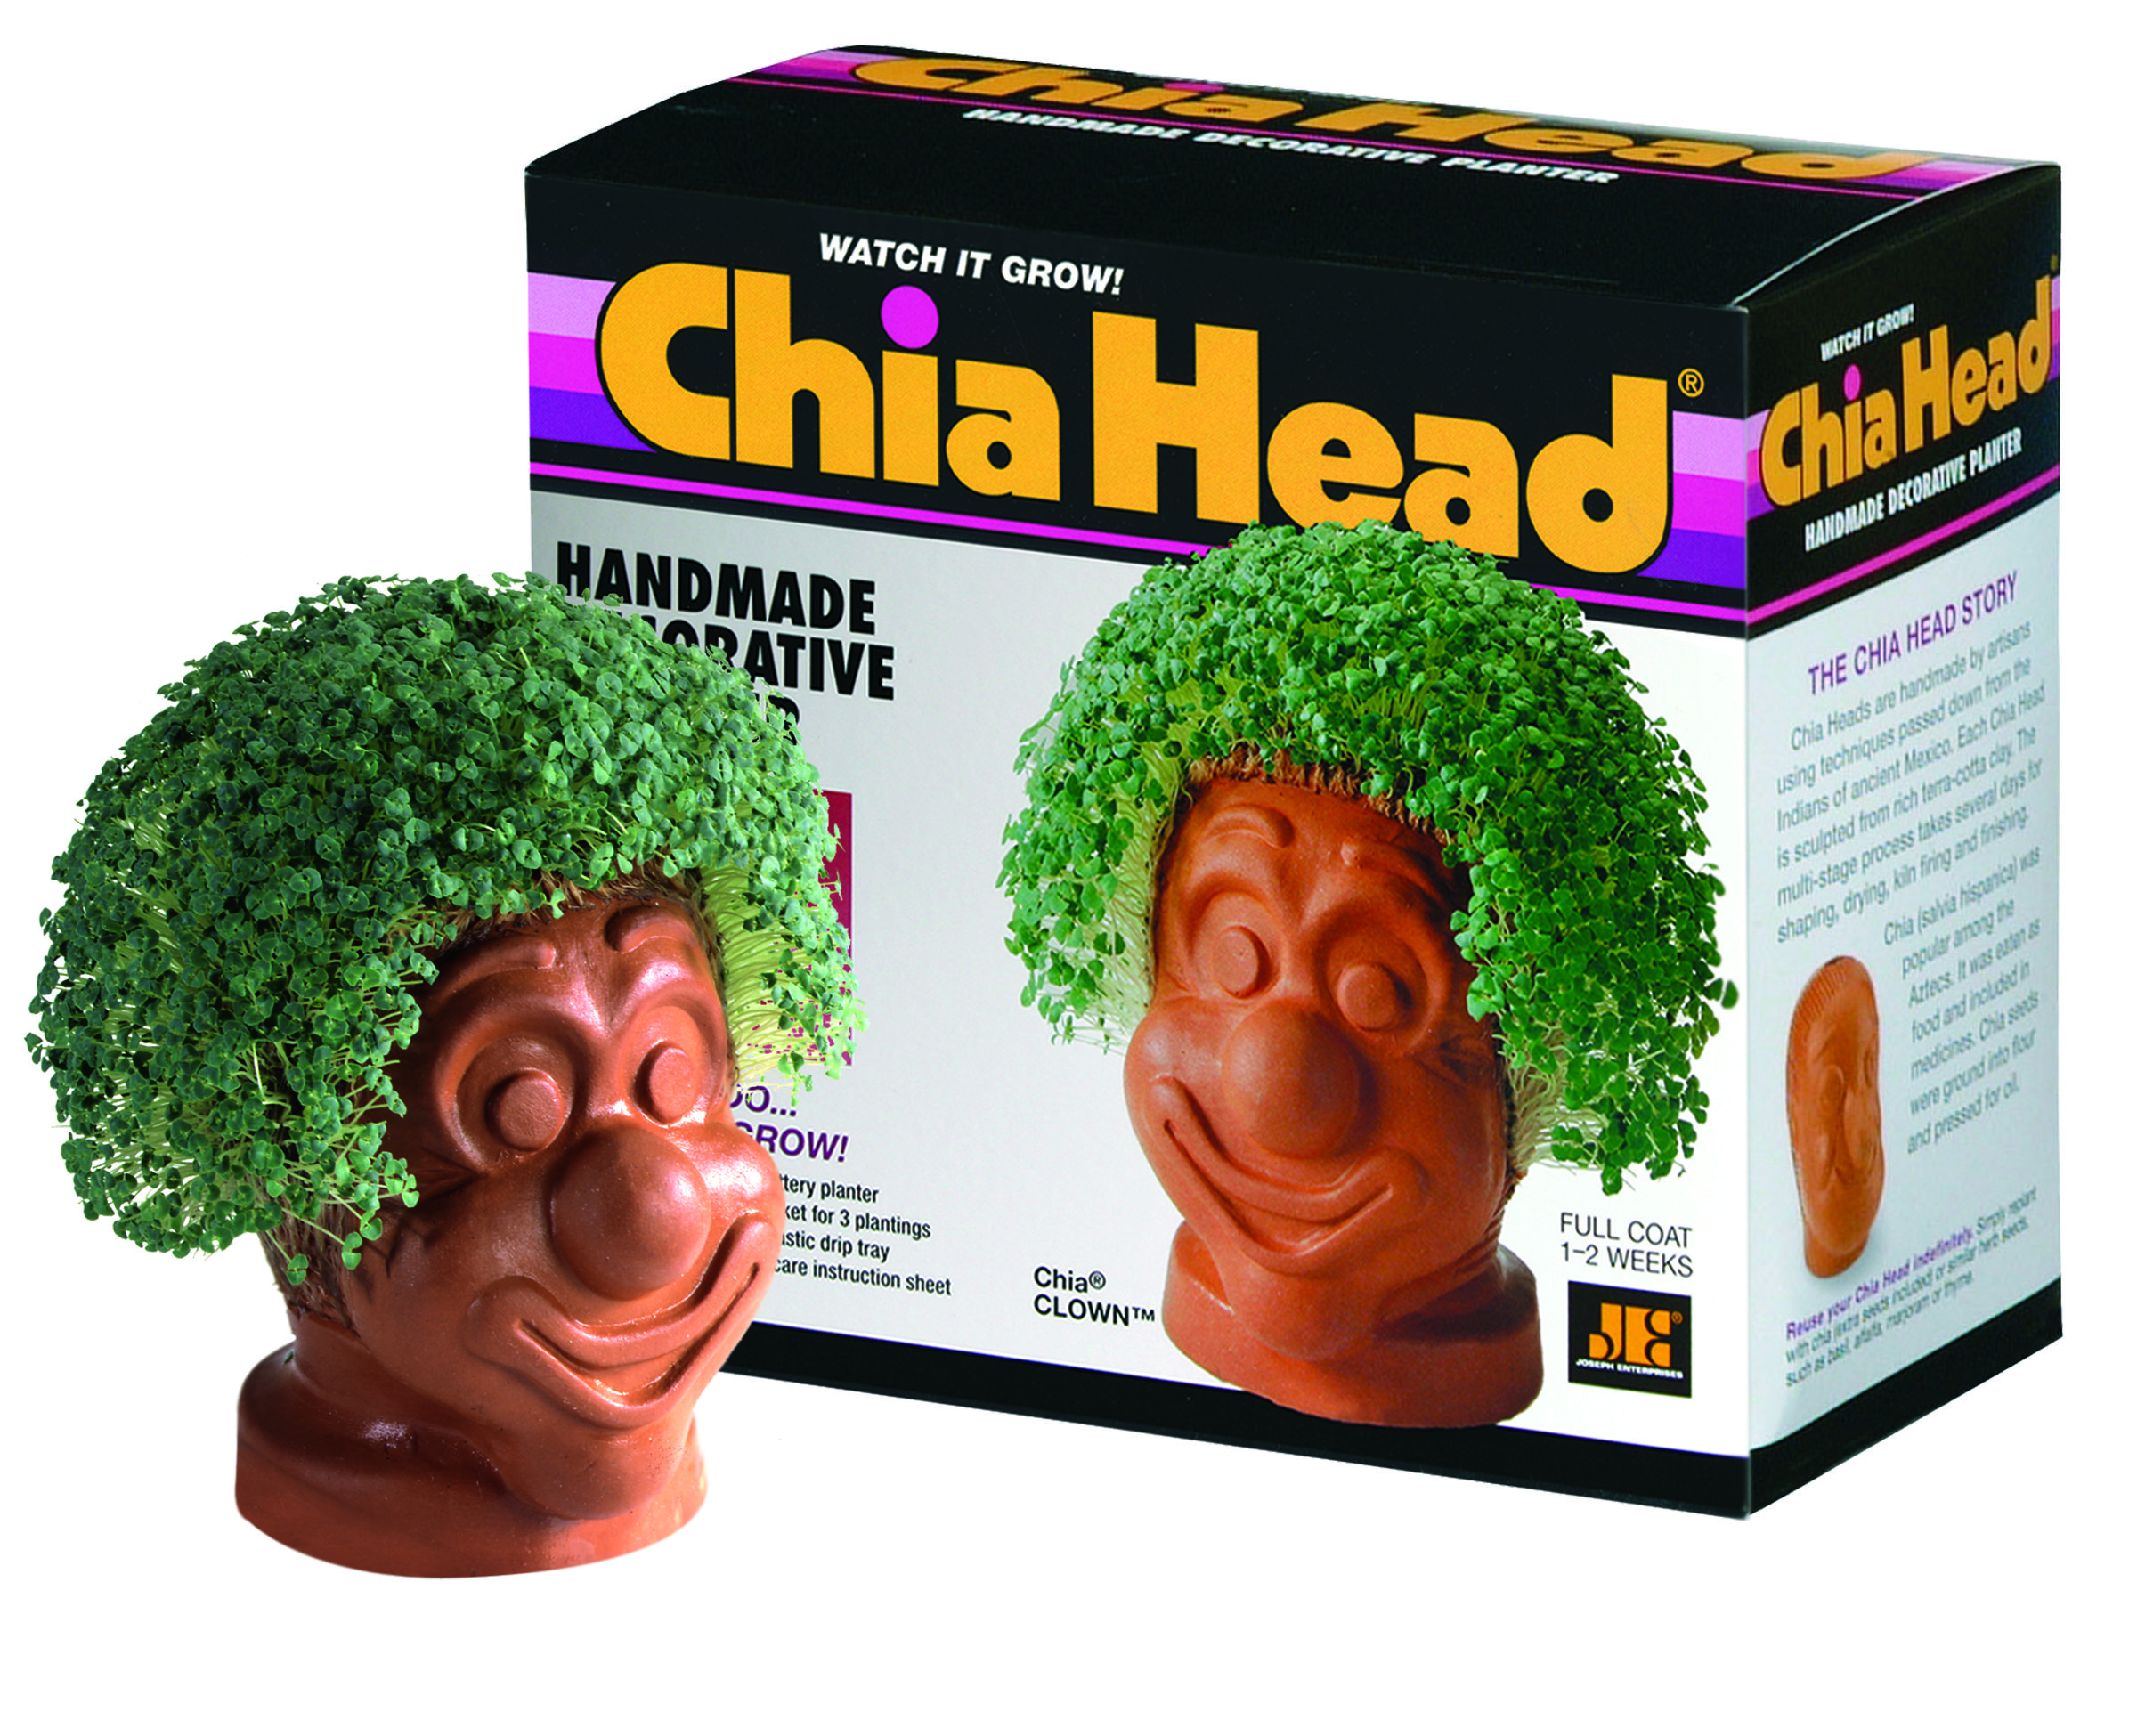 Chia pet herb garden - Collecting And Growing Chia Pet Pottery Planters Has Become An American Tradition Everybody Loves Chia Pets Kids And Grown Ups Alike Will Enjoy